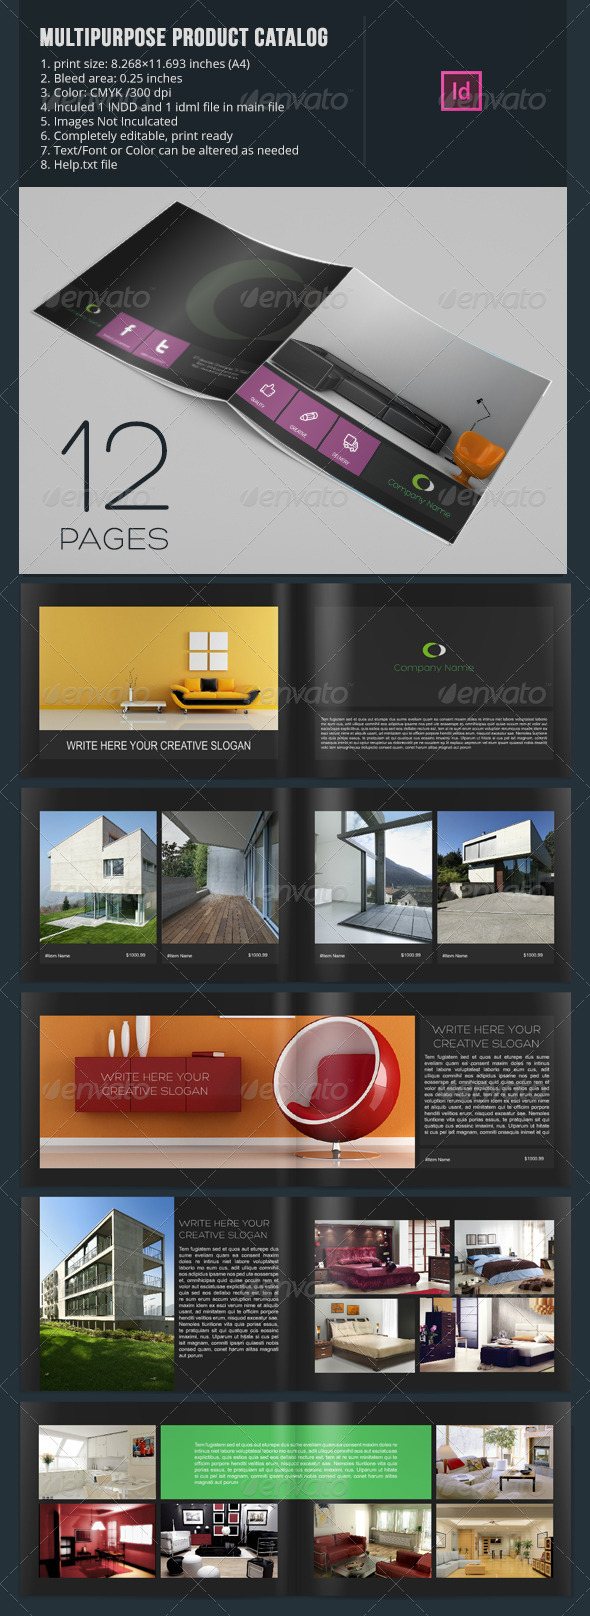 Multipurpose Product Catalog - 12 Pages - Catalogs Brochures